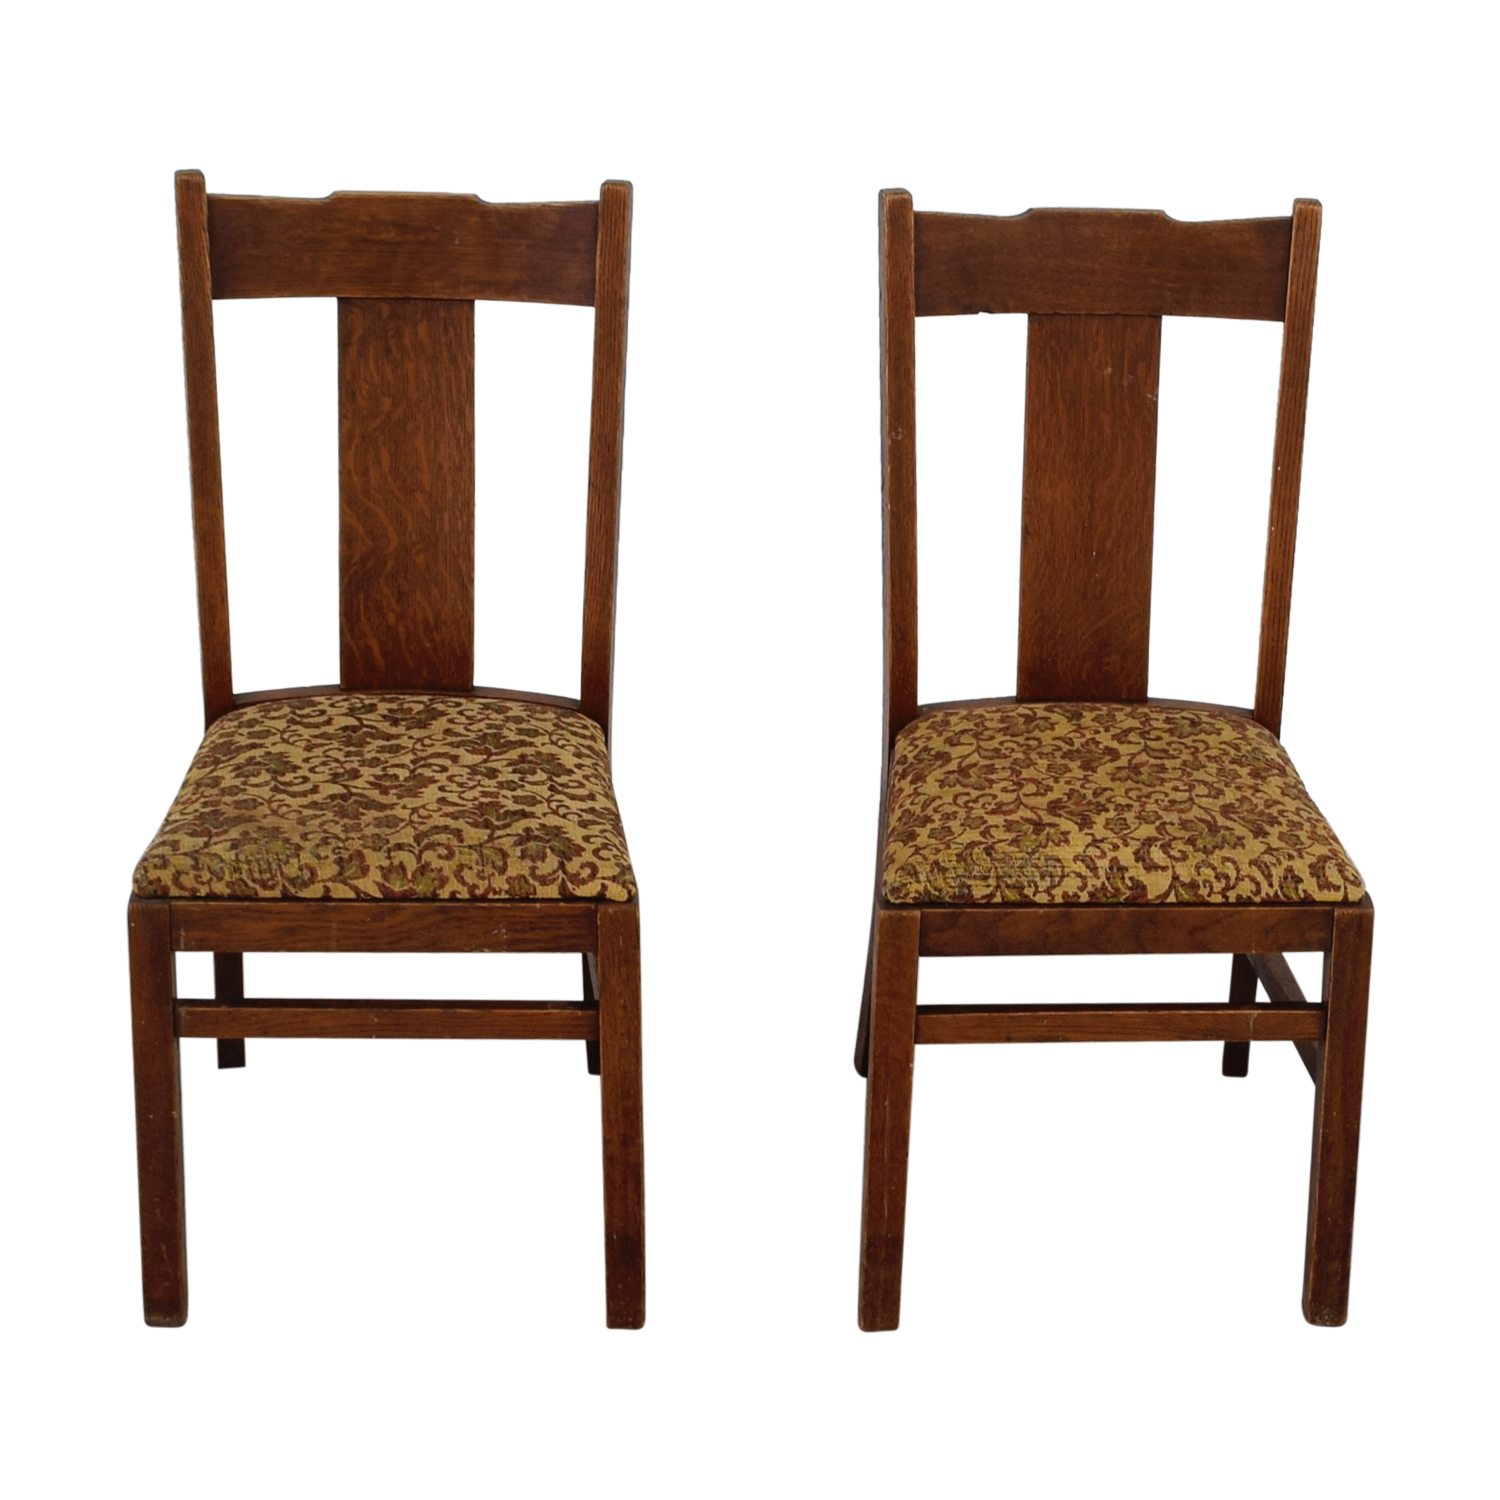 Antique Mission Upholstered Chairs / Chairs